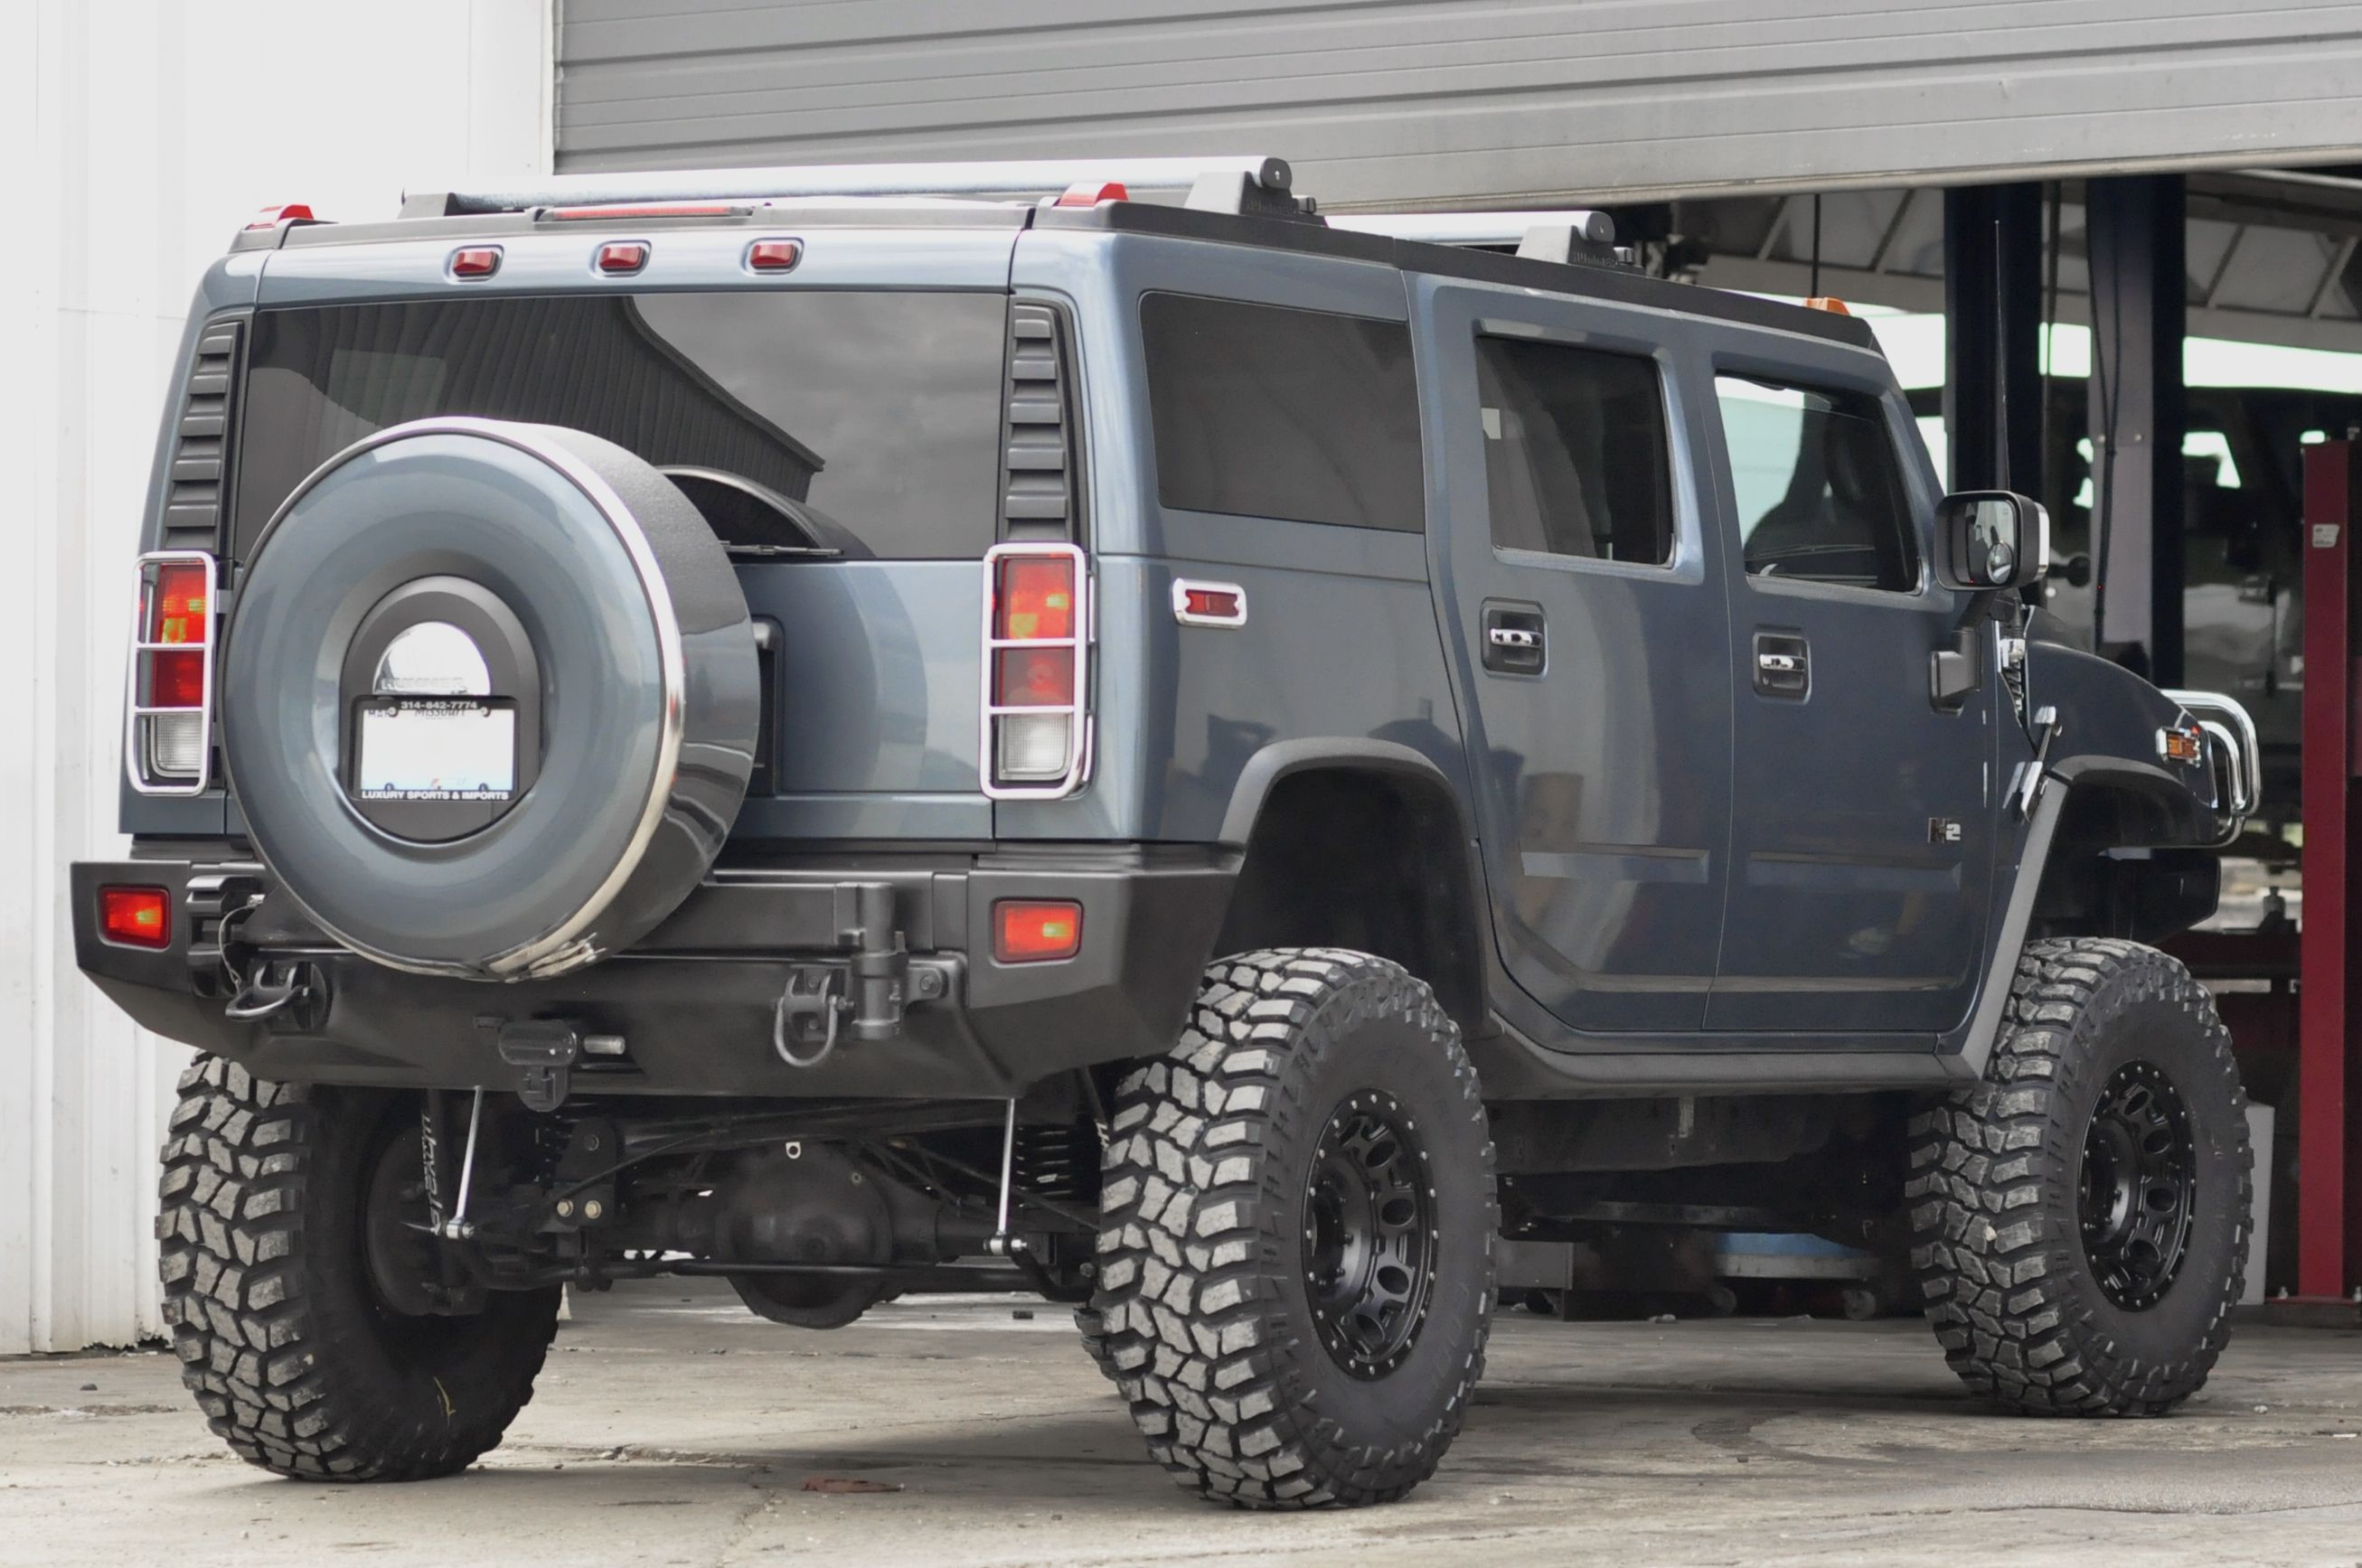 2005 Hummer H2 With A 6 Inch Fabtech Lift And 37 Inch Cooper Stt Pro Tires Upgraded At Axleboy Off Road Hummer H2 Hummer Monster Trucks